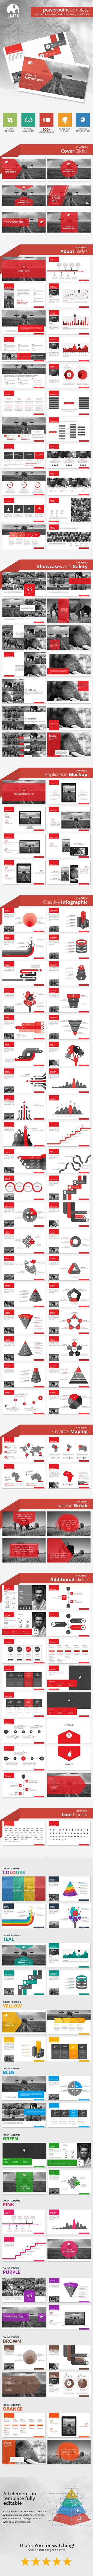 Gajah - Annual Report Powerpoint Template (Powerpoint Templates)